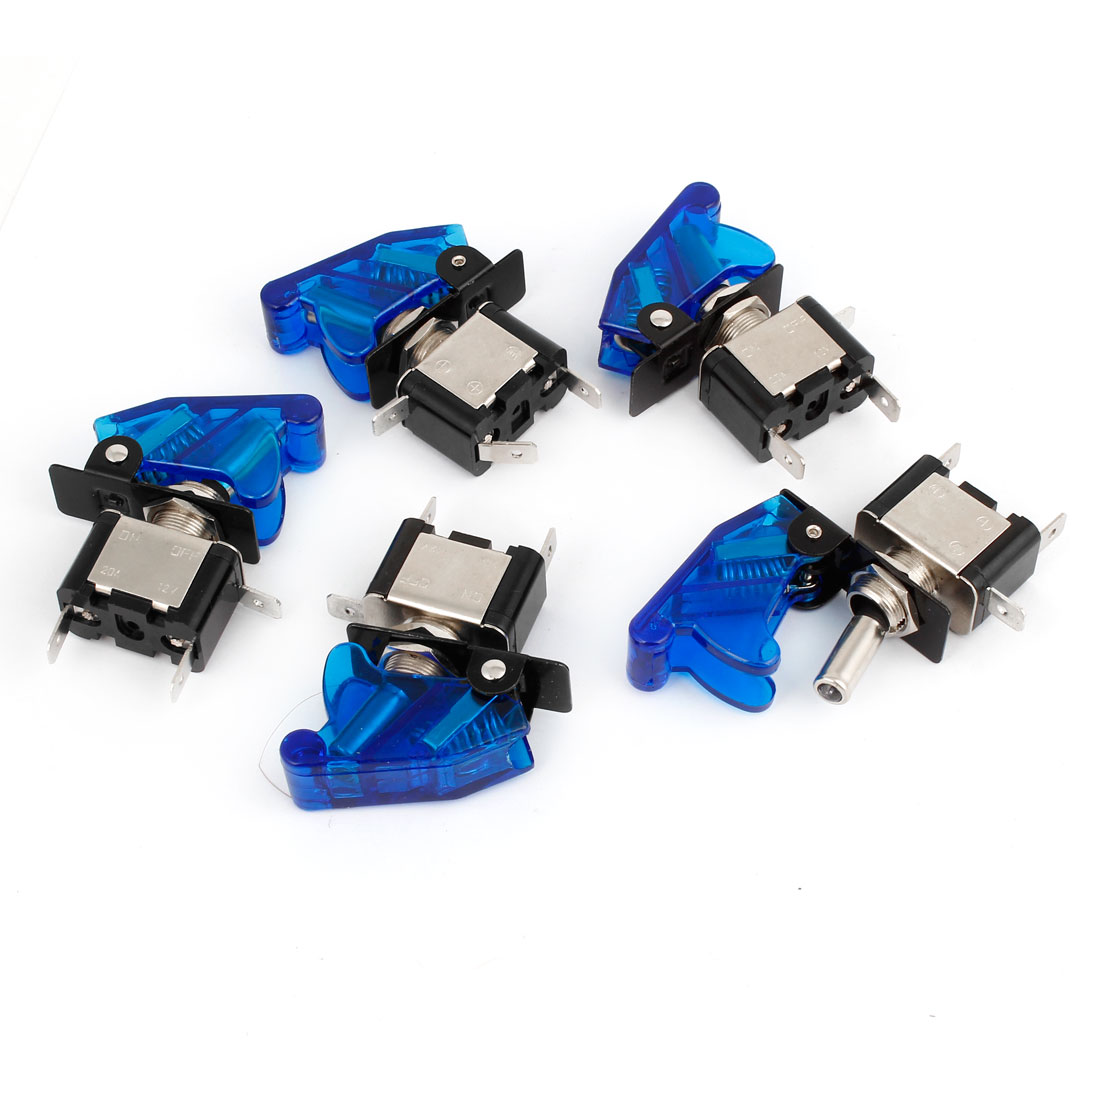 DC 12V 20A Blue LED Illuminated SPST ON/OFF Racing Car Toggle Switch 5 Pcs